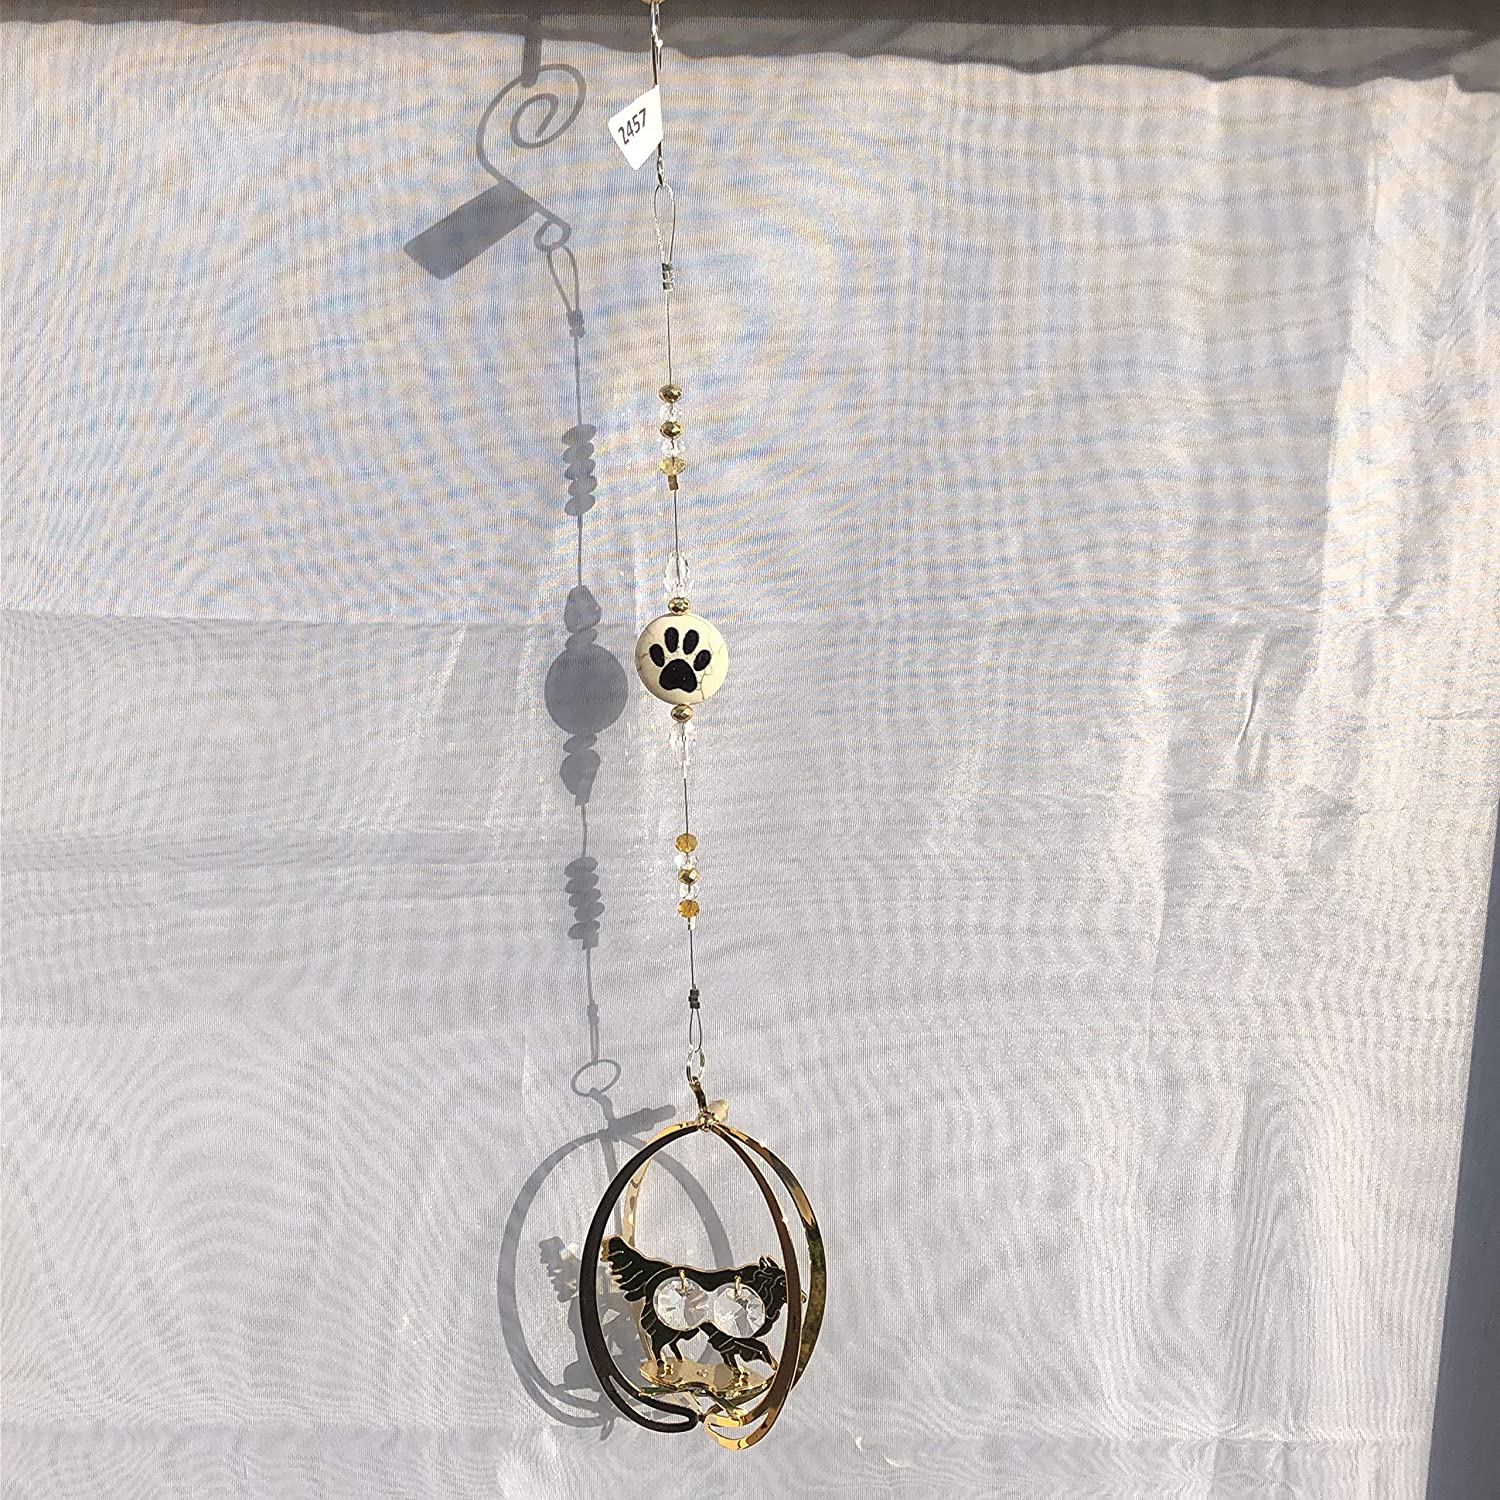 BORDER COLLIE Gold Dog Suncatcher Clear Crystals 2457 paw print bead dog owner christmas birthday gift loss of dog present groomer sitter watcher vet puppy present